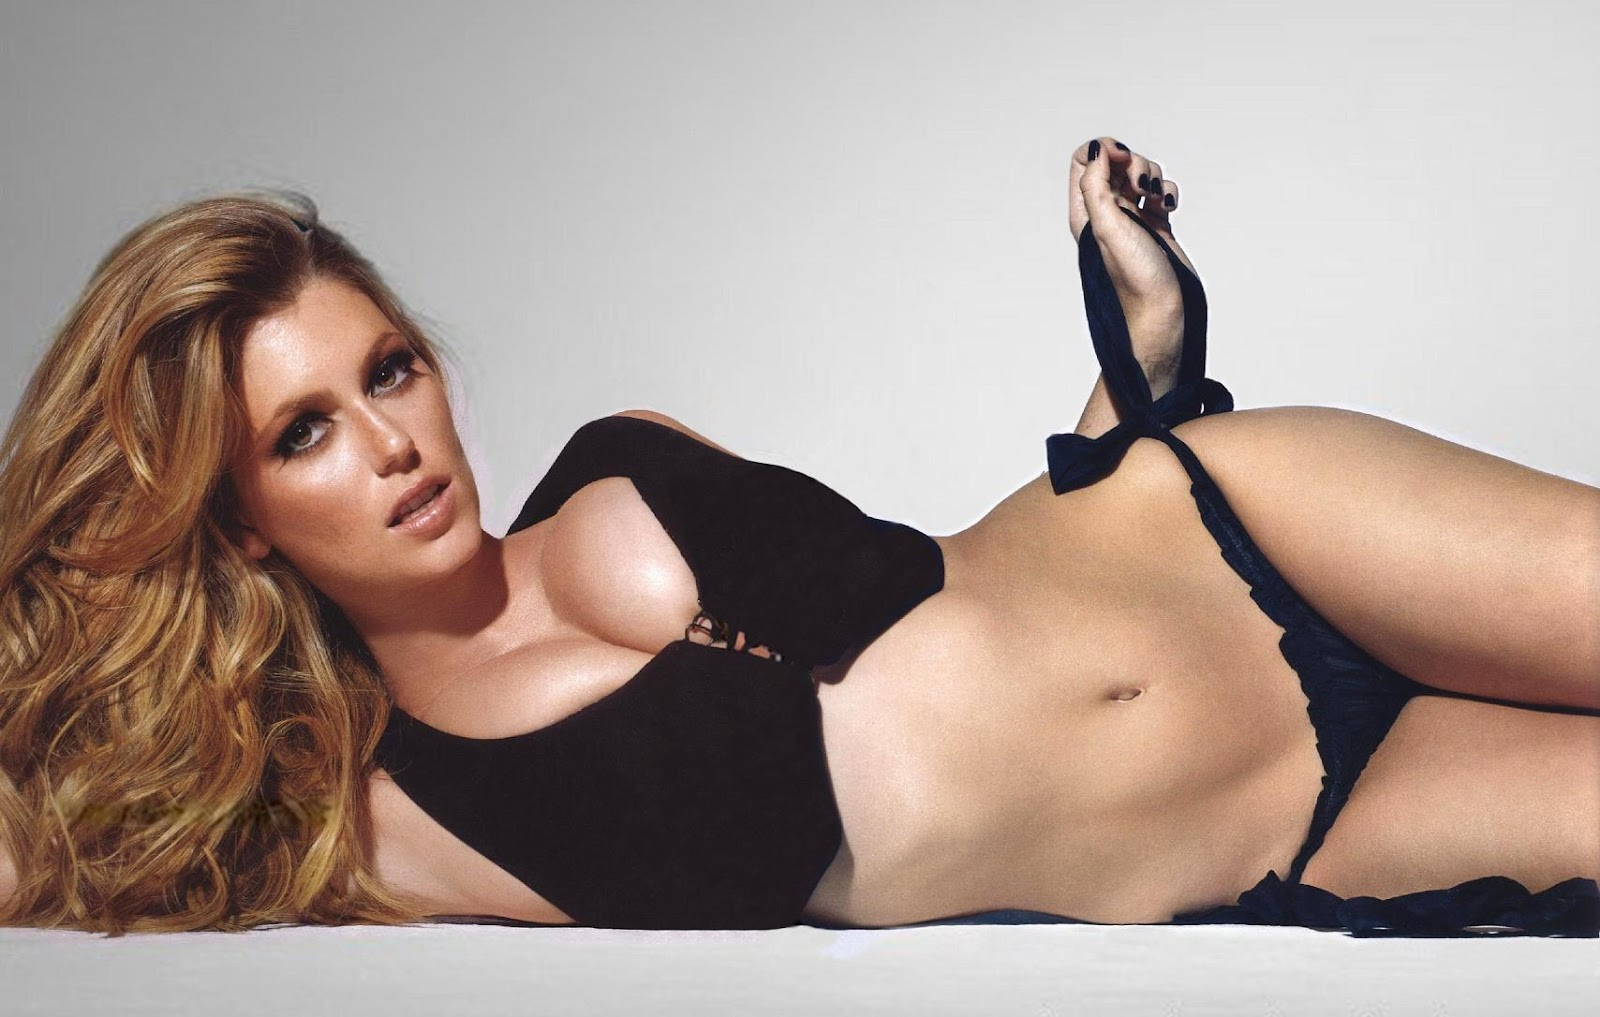 diora baird pic wallpapers - photo #5